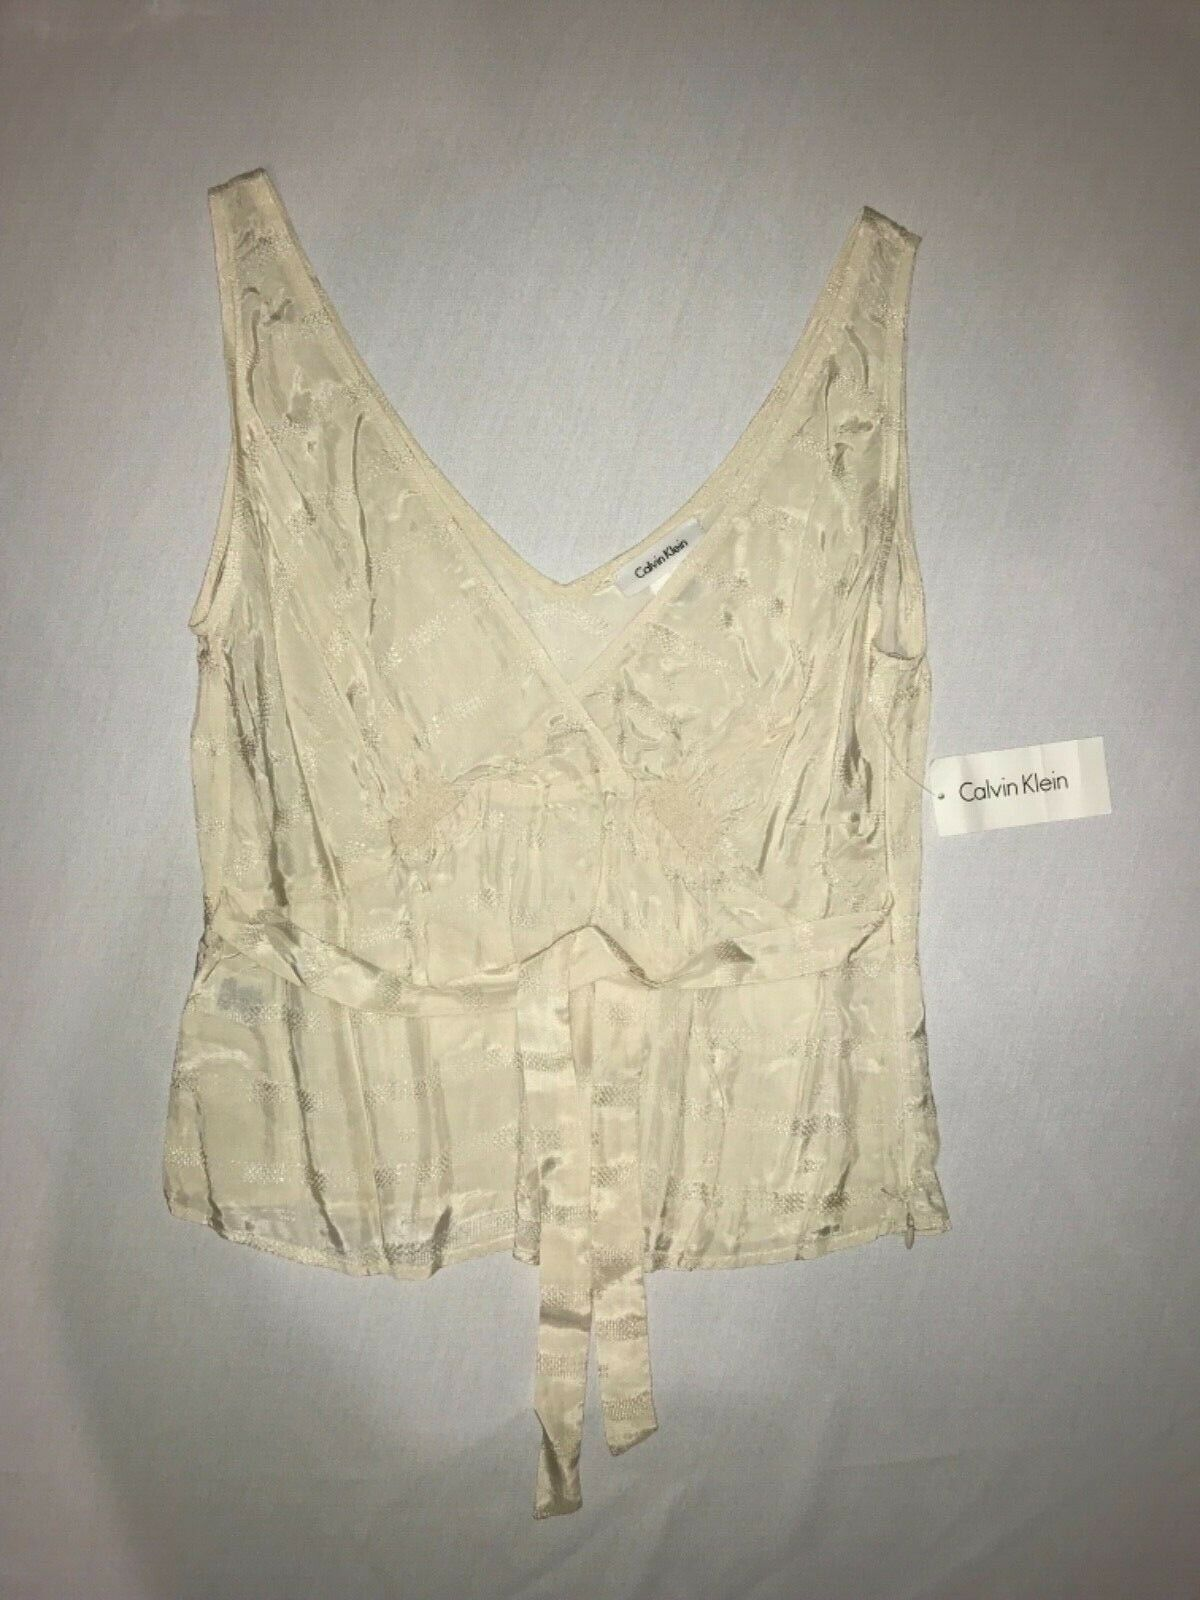 Primary image for Calvin Klein V-Neck Front & Back Camisole Top in 100% Silk Size 10